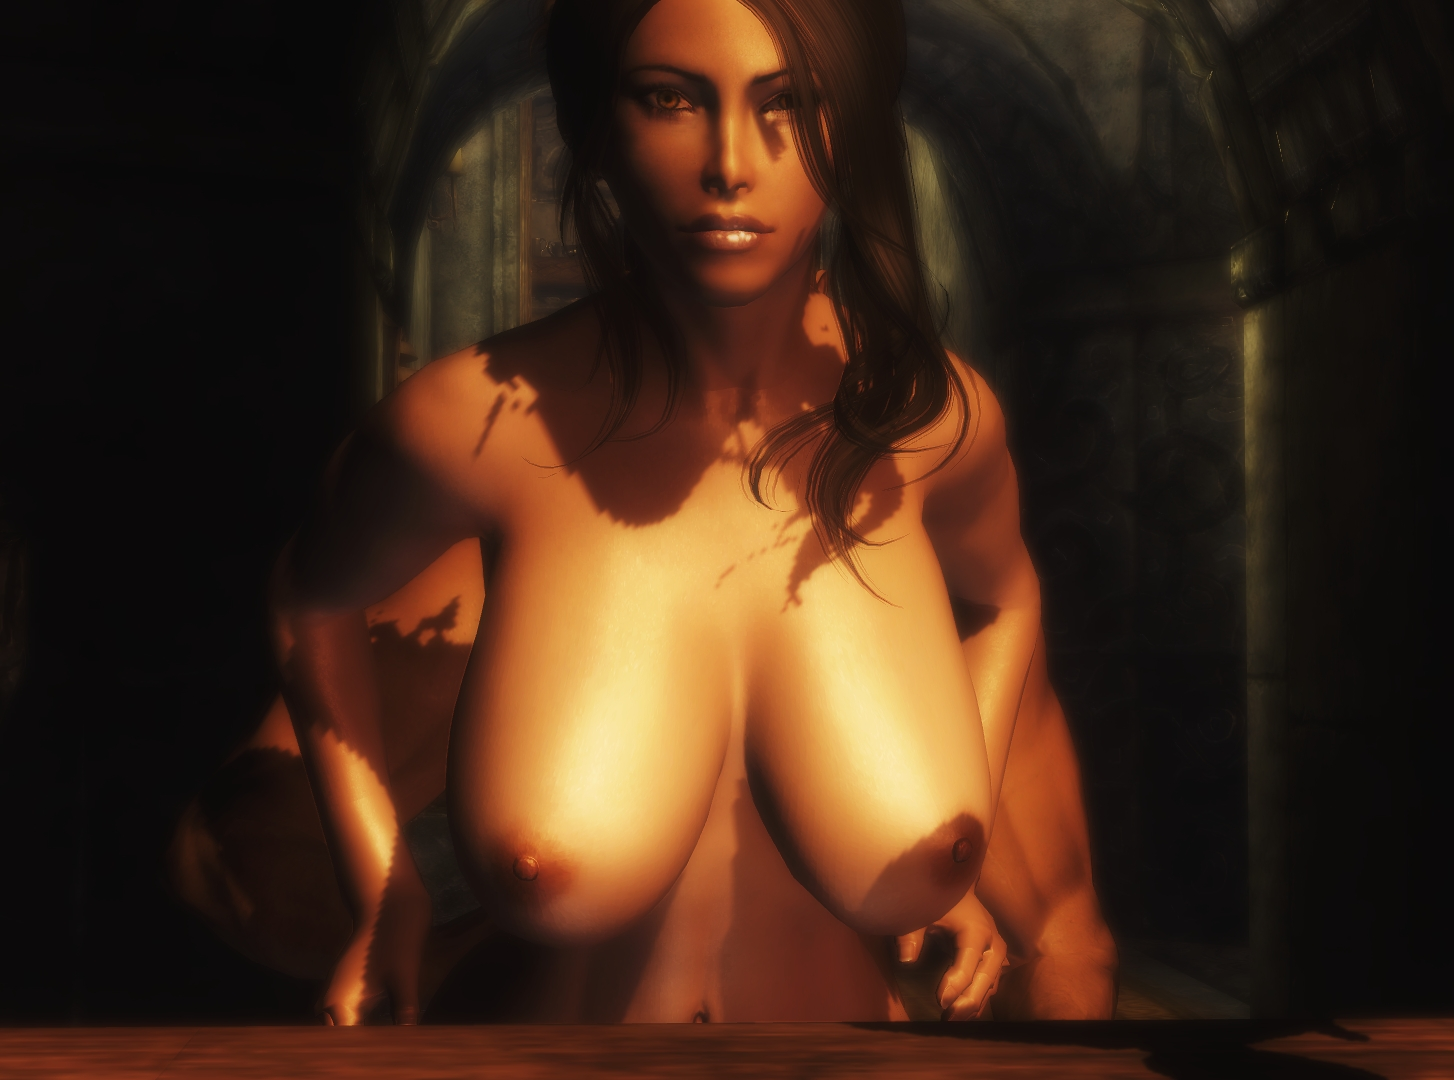 Skyrim alexstrasza nude erotic videos